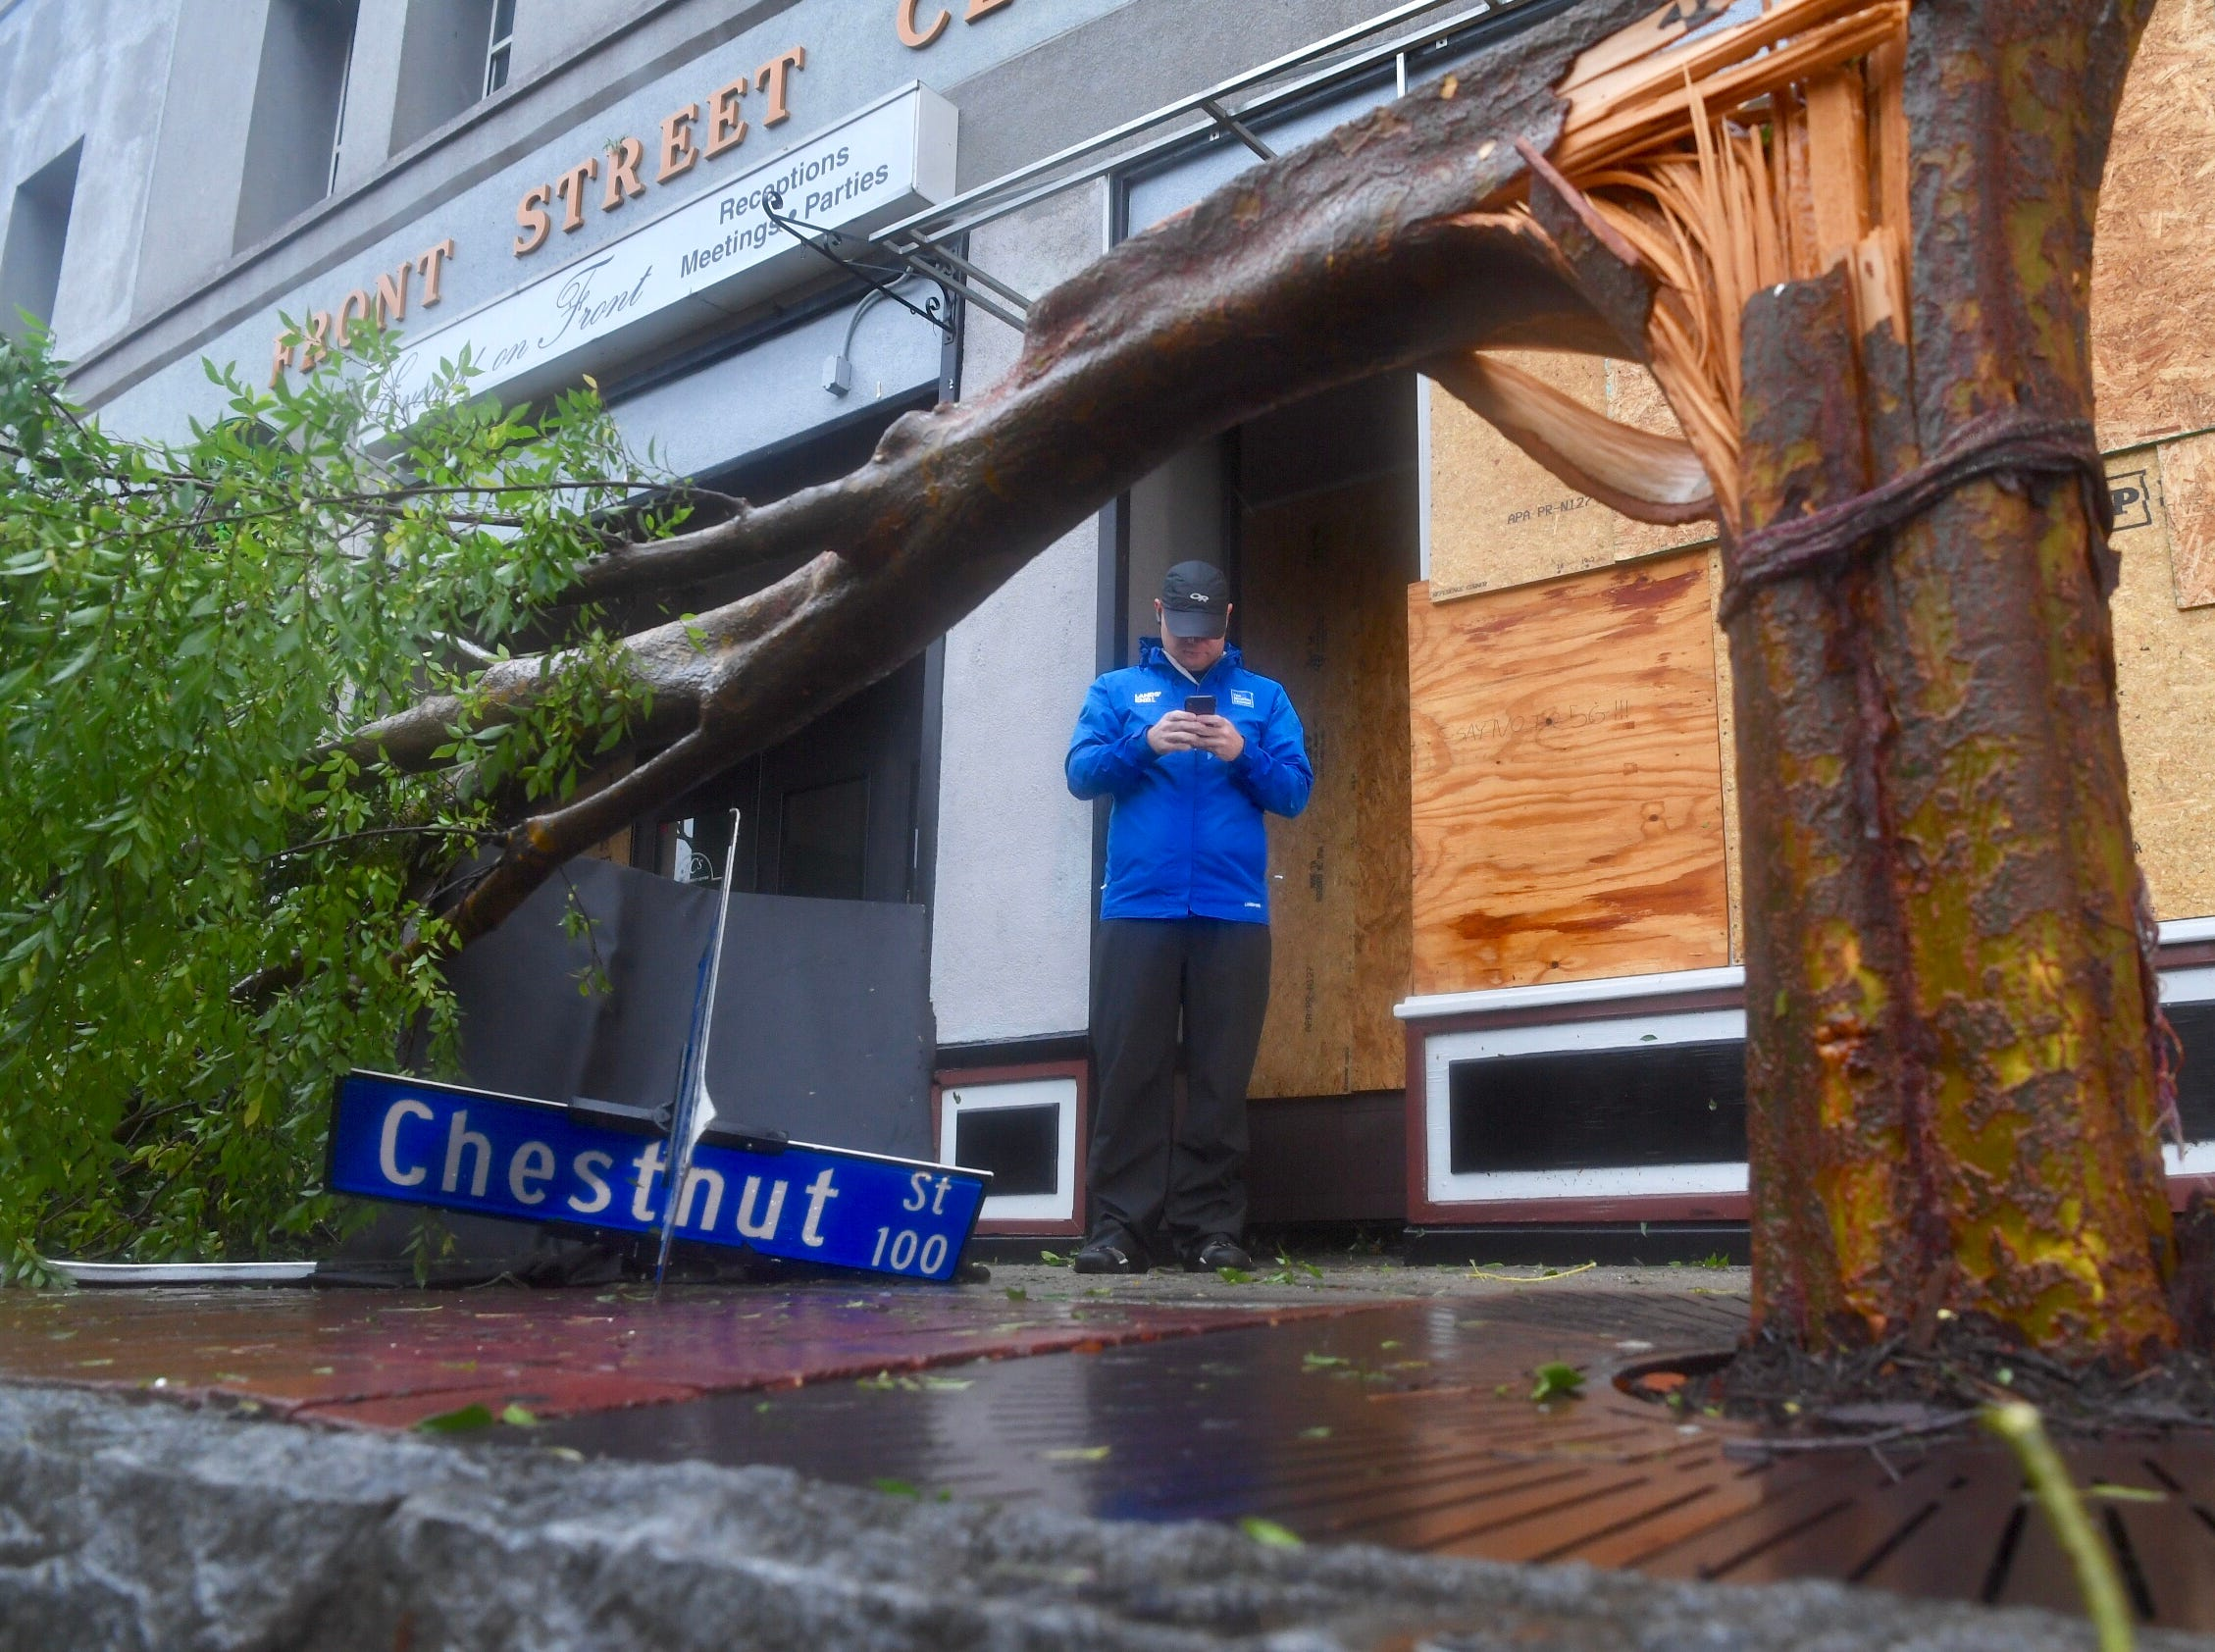 Michael Vann of The Weather Channel  stands near a fallen tree in downtown Wilmington, N.C., on Friday, Sept. 14, 2018, in the aftermath of Hurricane Florence's landfall.